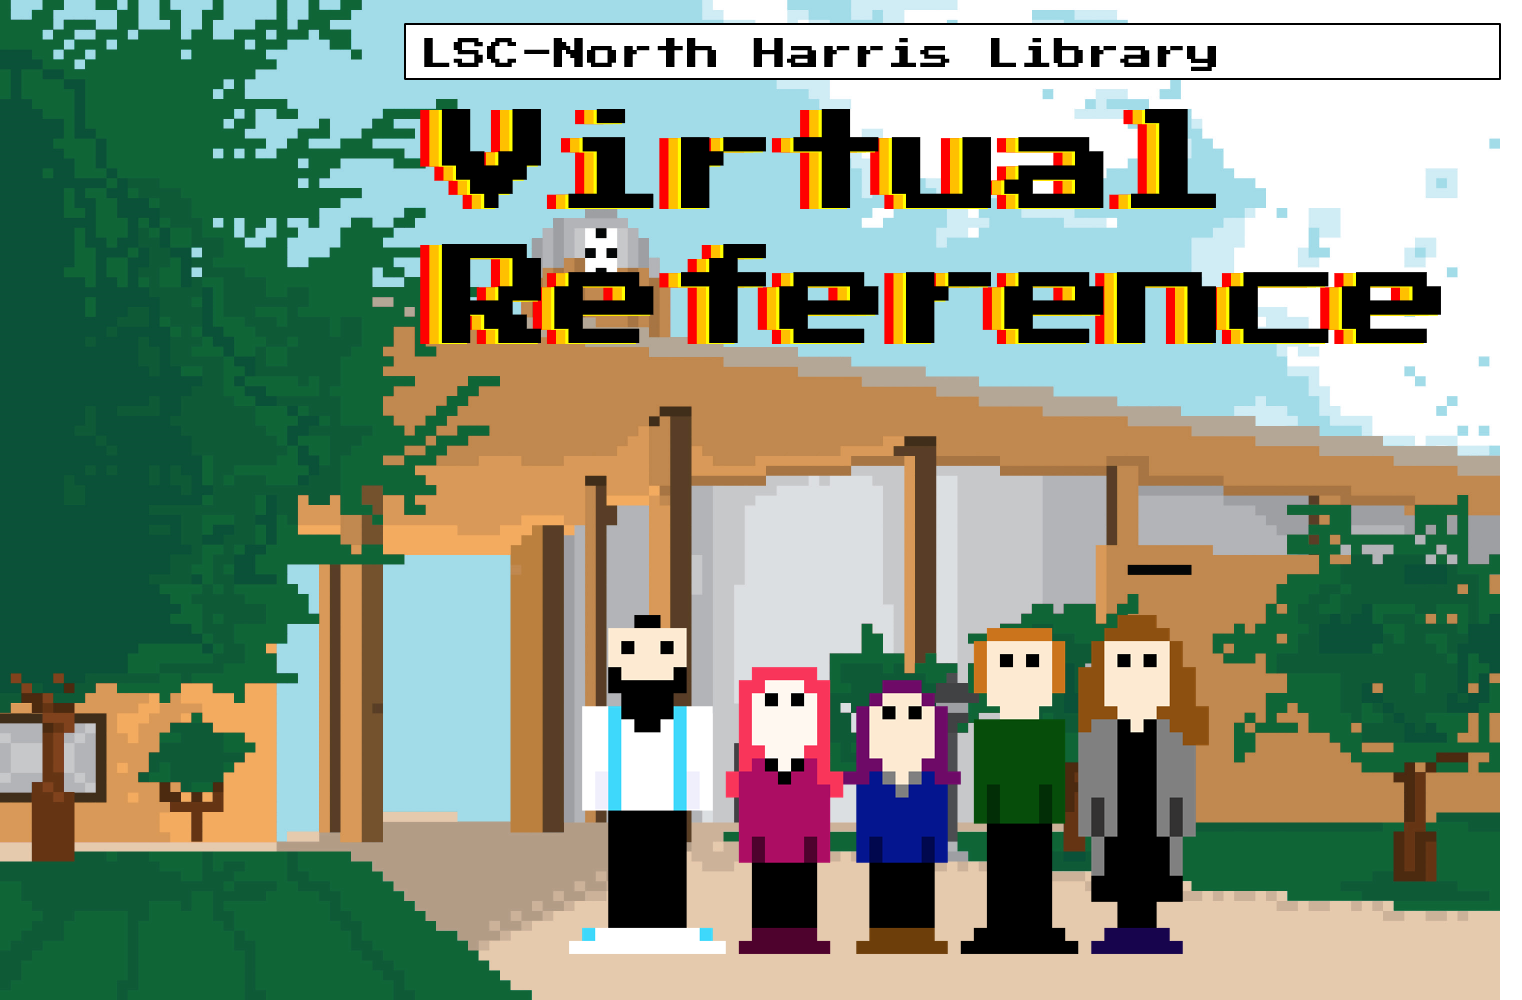 LSC-North Harris Library Virtual Reference Logo